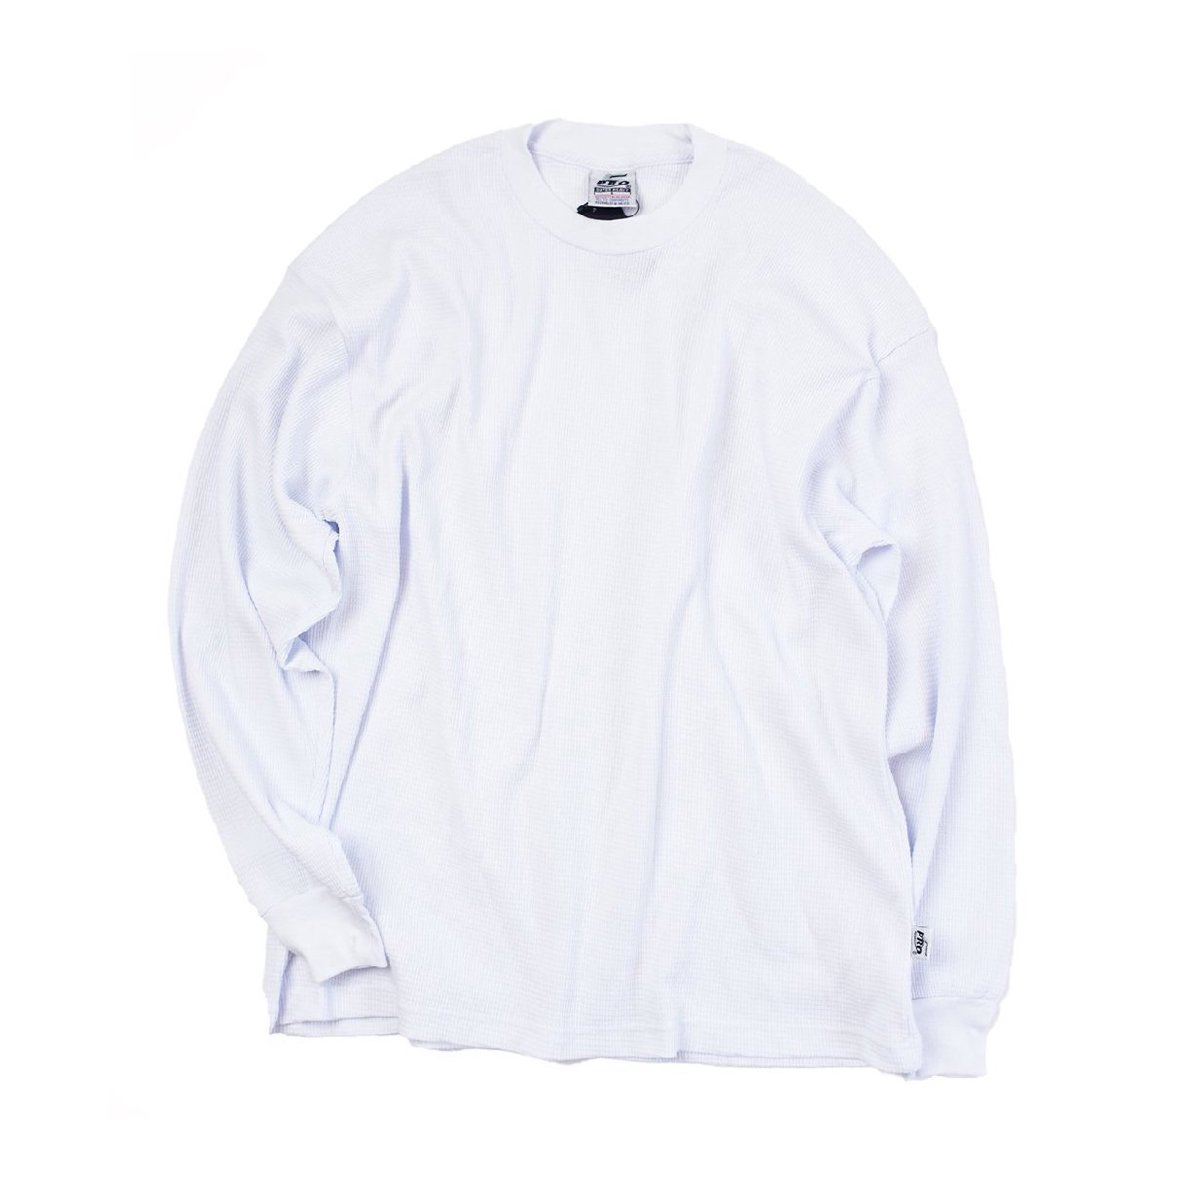 【PRO 5】Thermal L/S Tee(White)                           </a>             <span class=